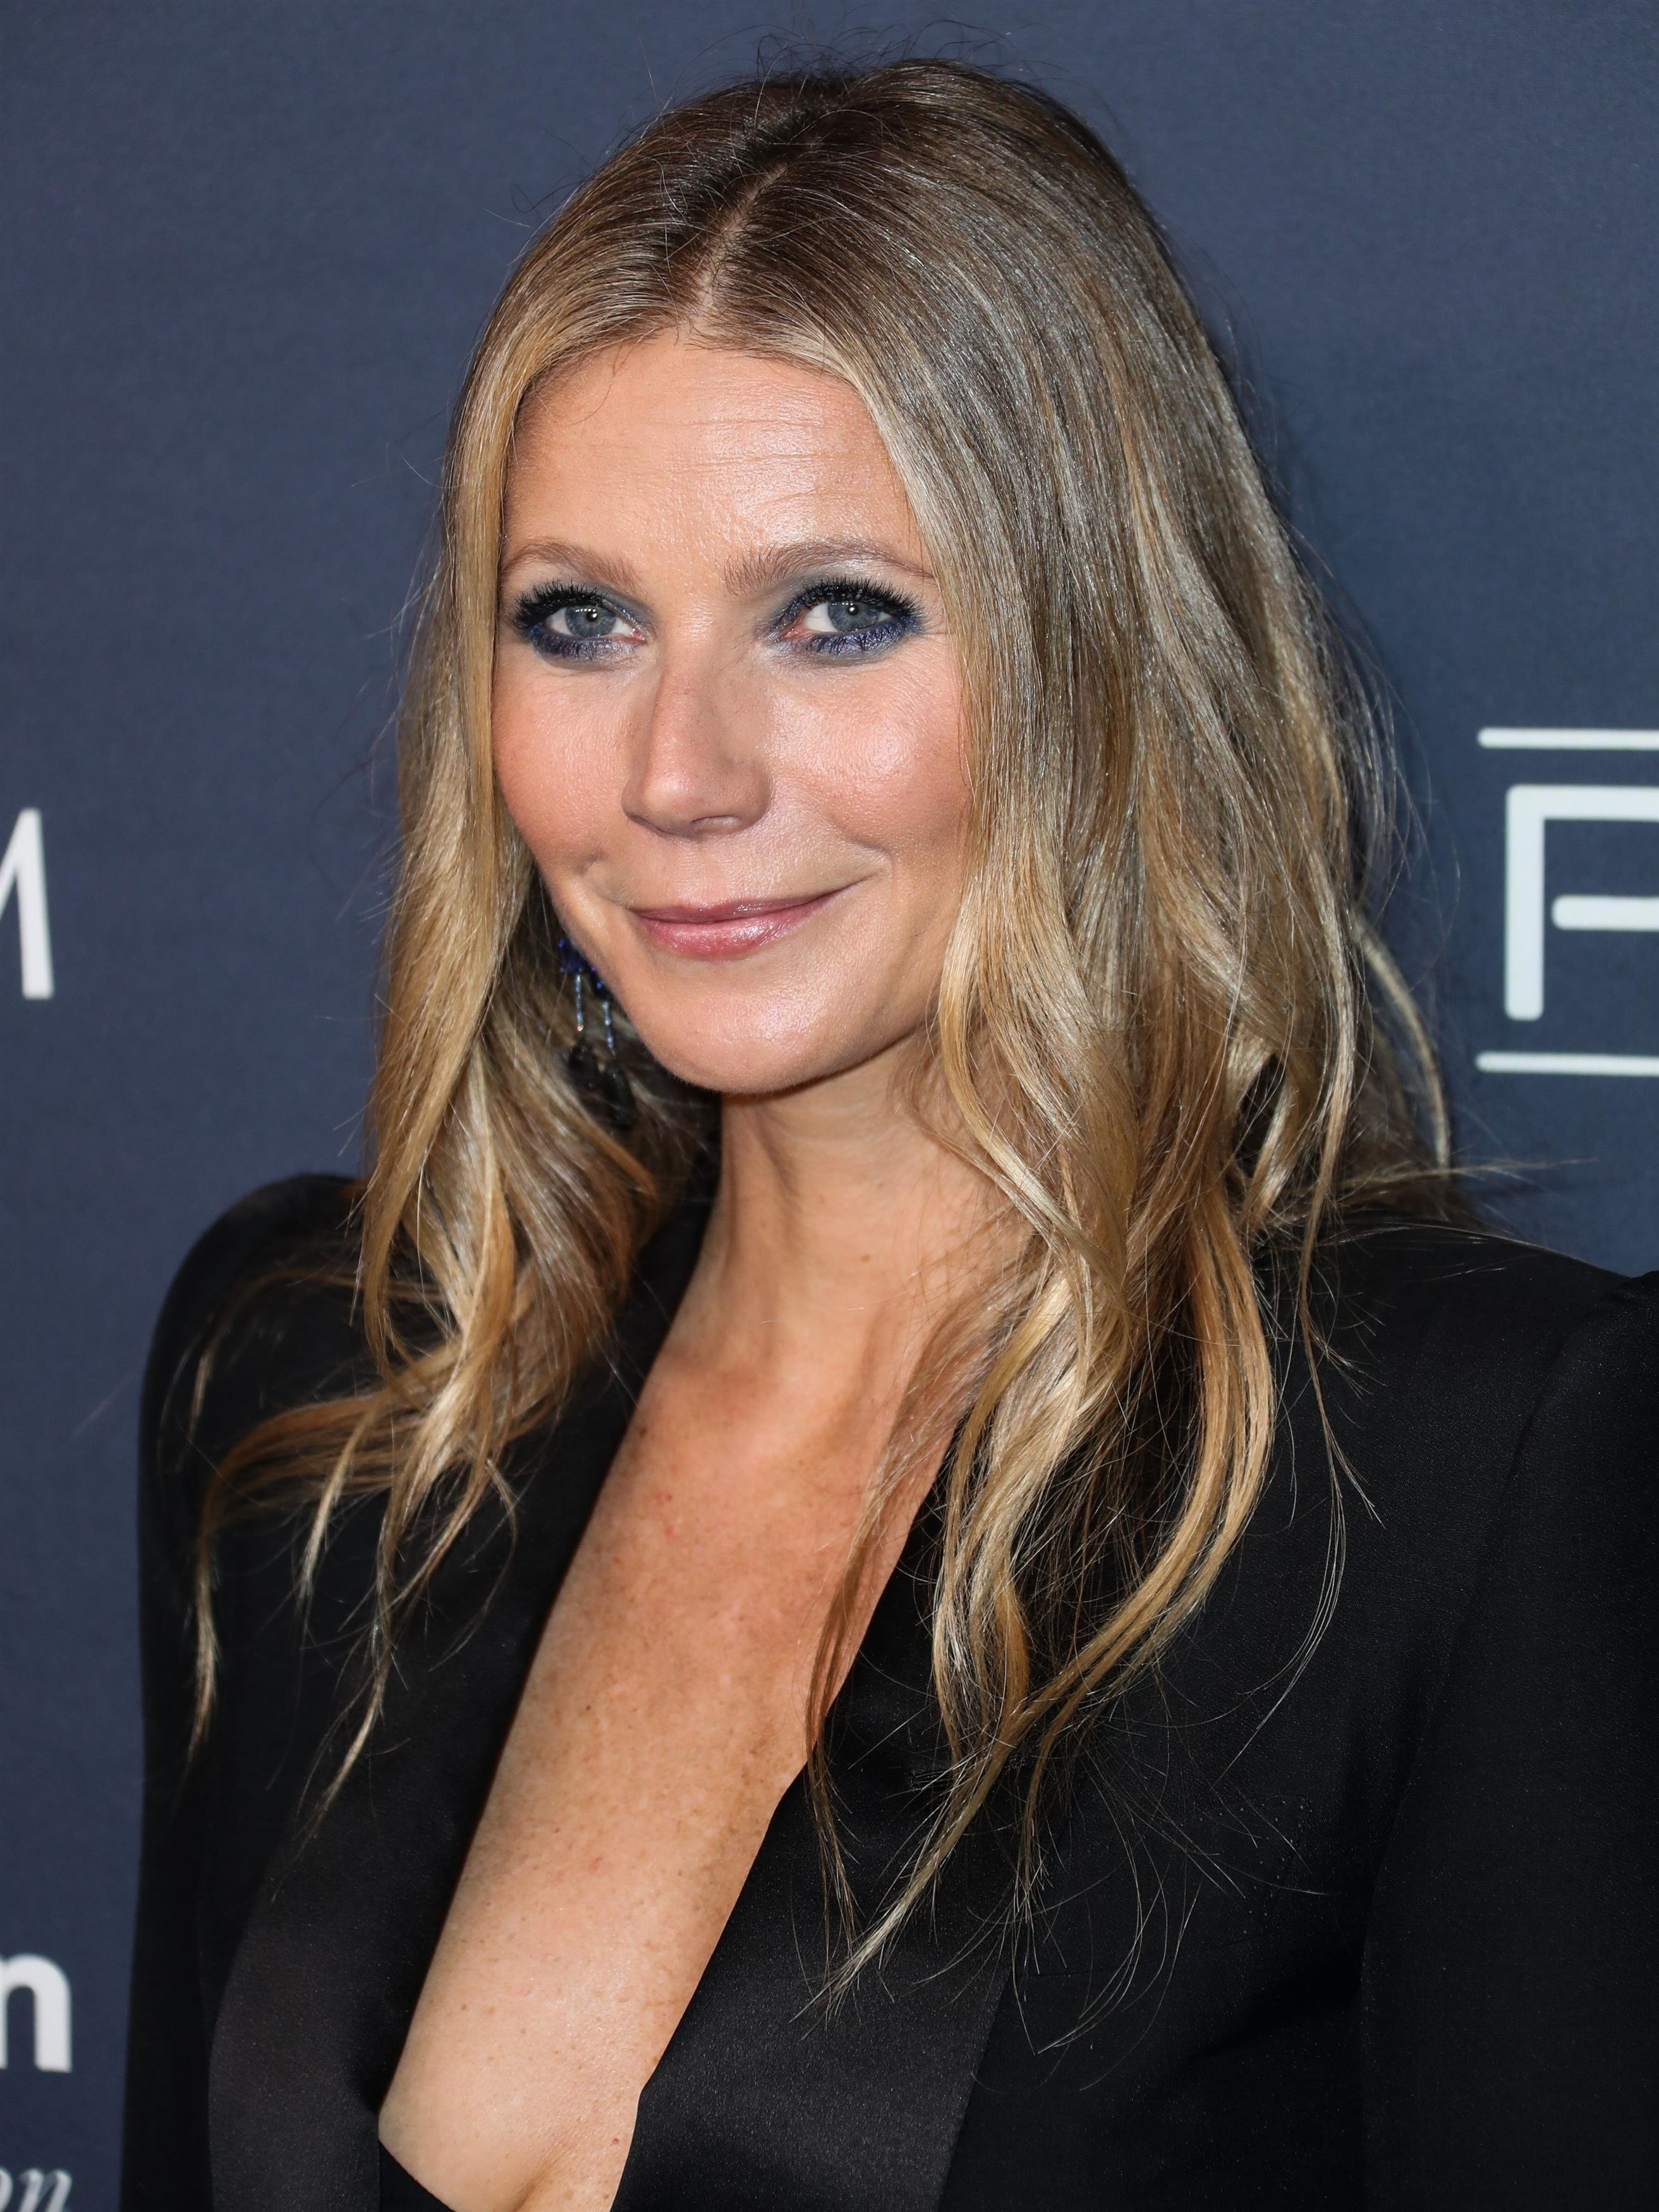 Culver City, CA  - Gwyneth Paltrow wearing Tom Ford with Irene Neuwirth jewelry arrives at the 2017 Baby2Baby Gala held at 3LABS.  Pictured: Gwyneth Paltrow  BACKGRID USA 11 NOVEMBER 2017, Image: 355180554, License: Rights-managed, Restrictions: , Model Release: no, Credit line: Profimedia, AKM-GSI